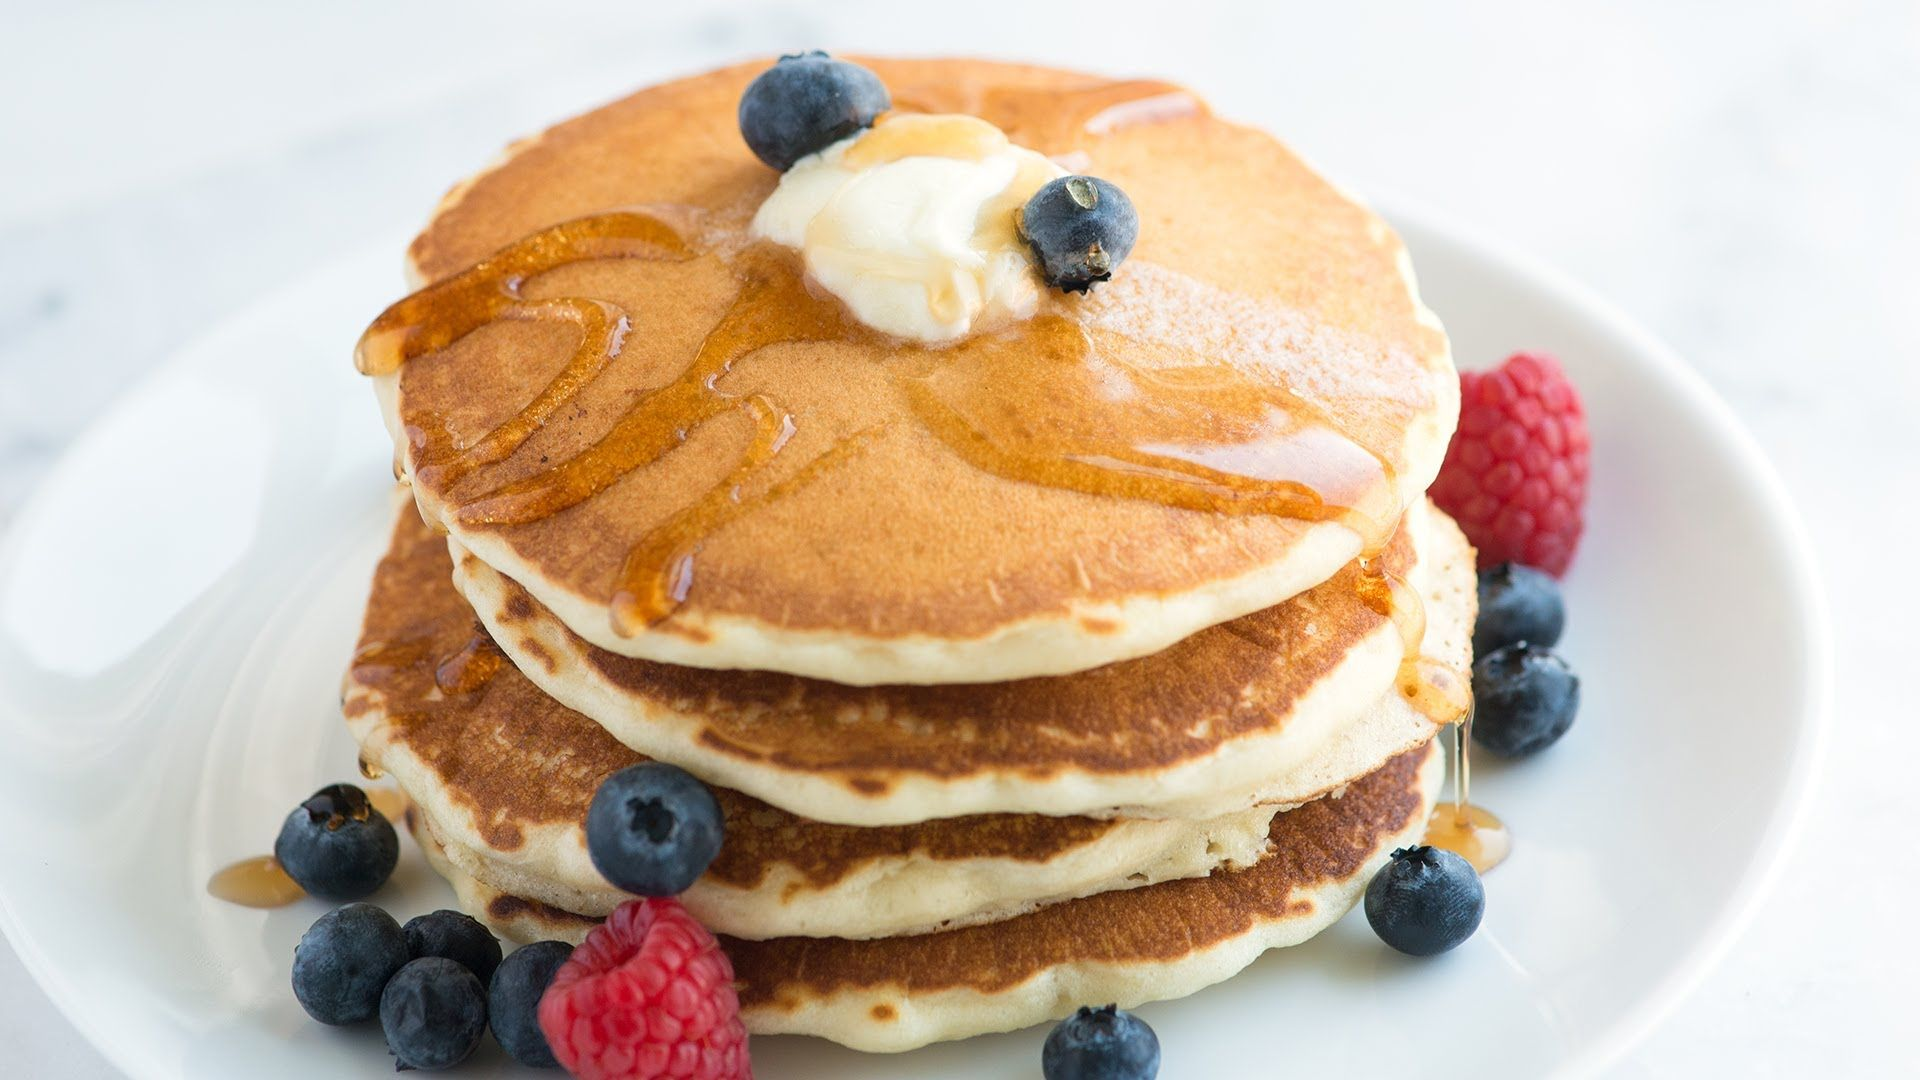 For the full pancake recipe with ingredient amounts and